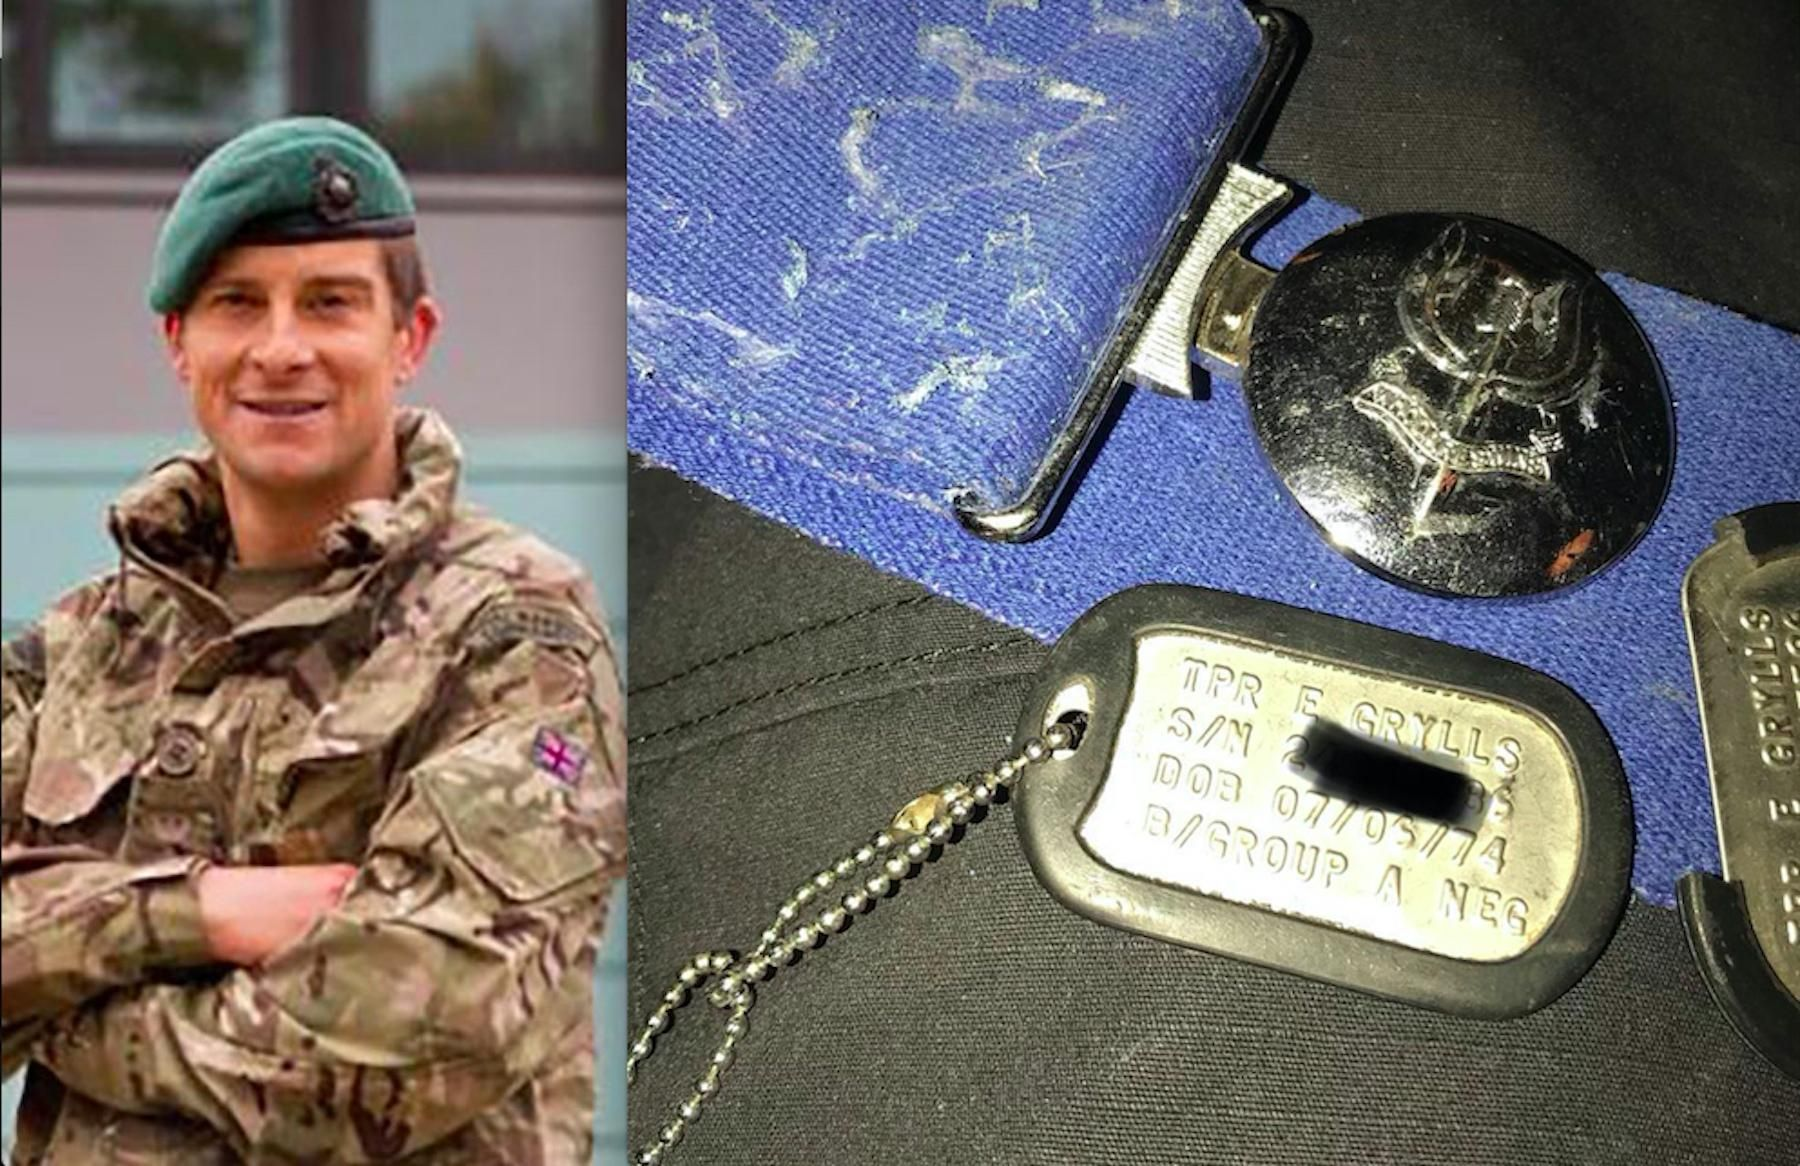 Trooper Bear Grylls Dog Tags And Regimental Stable Belt While